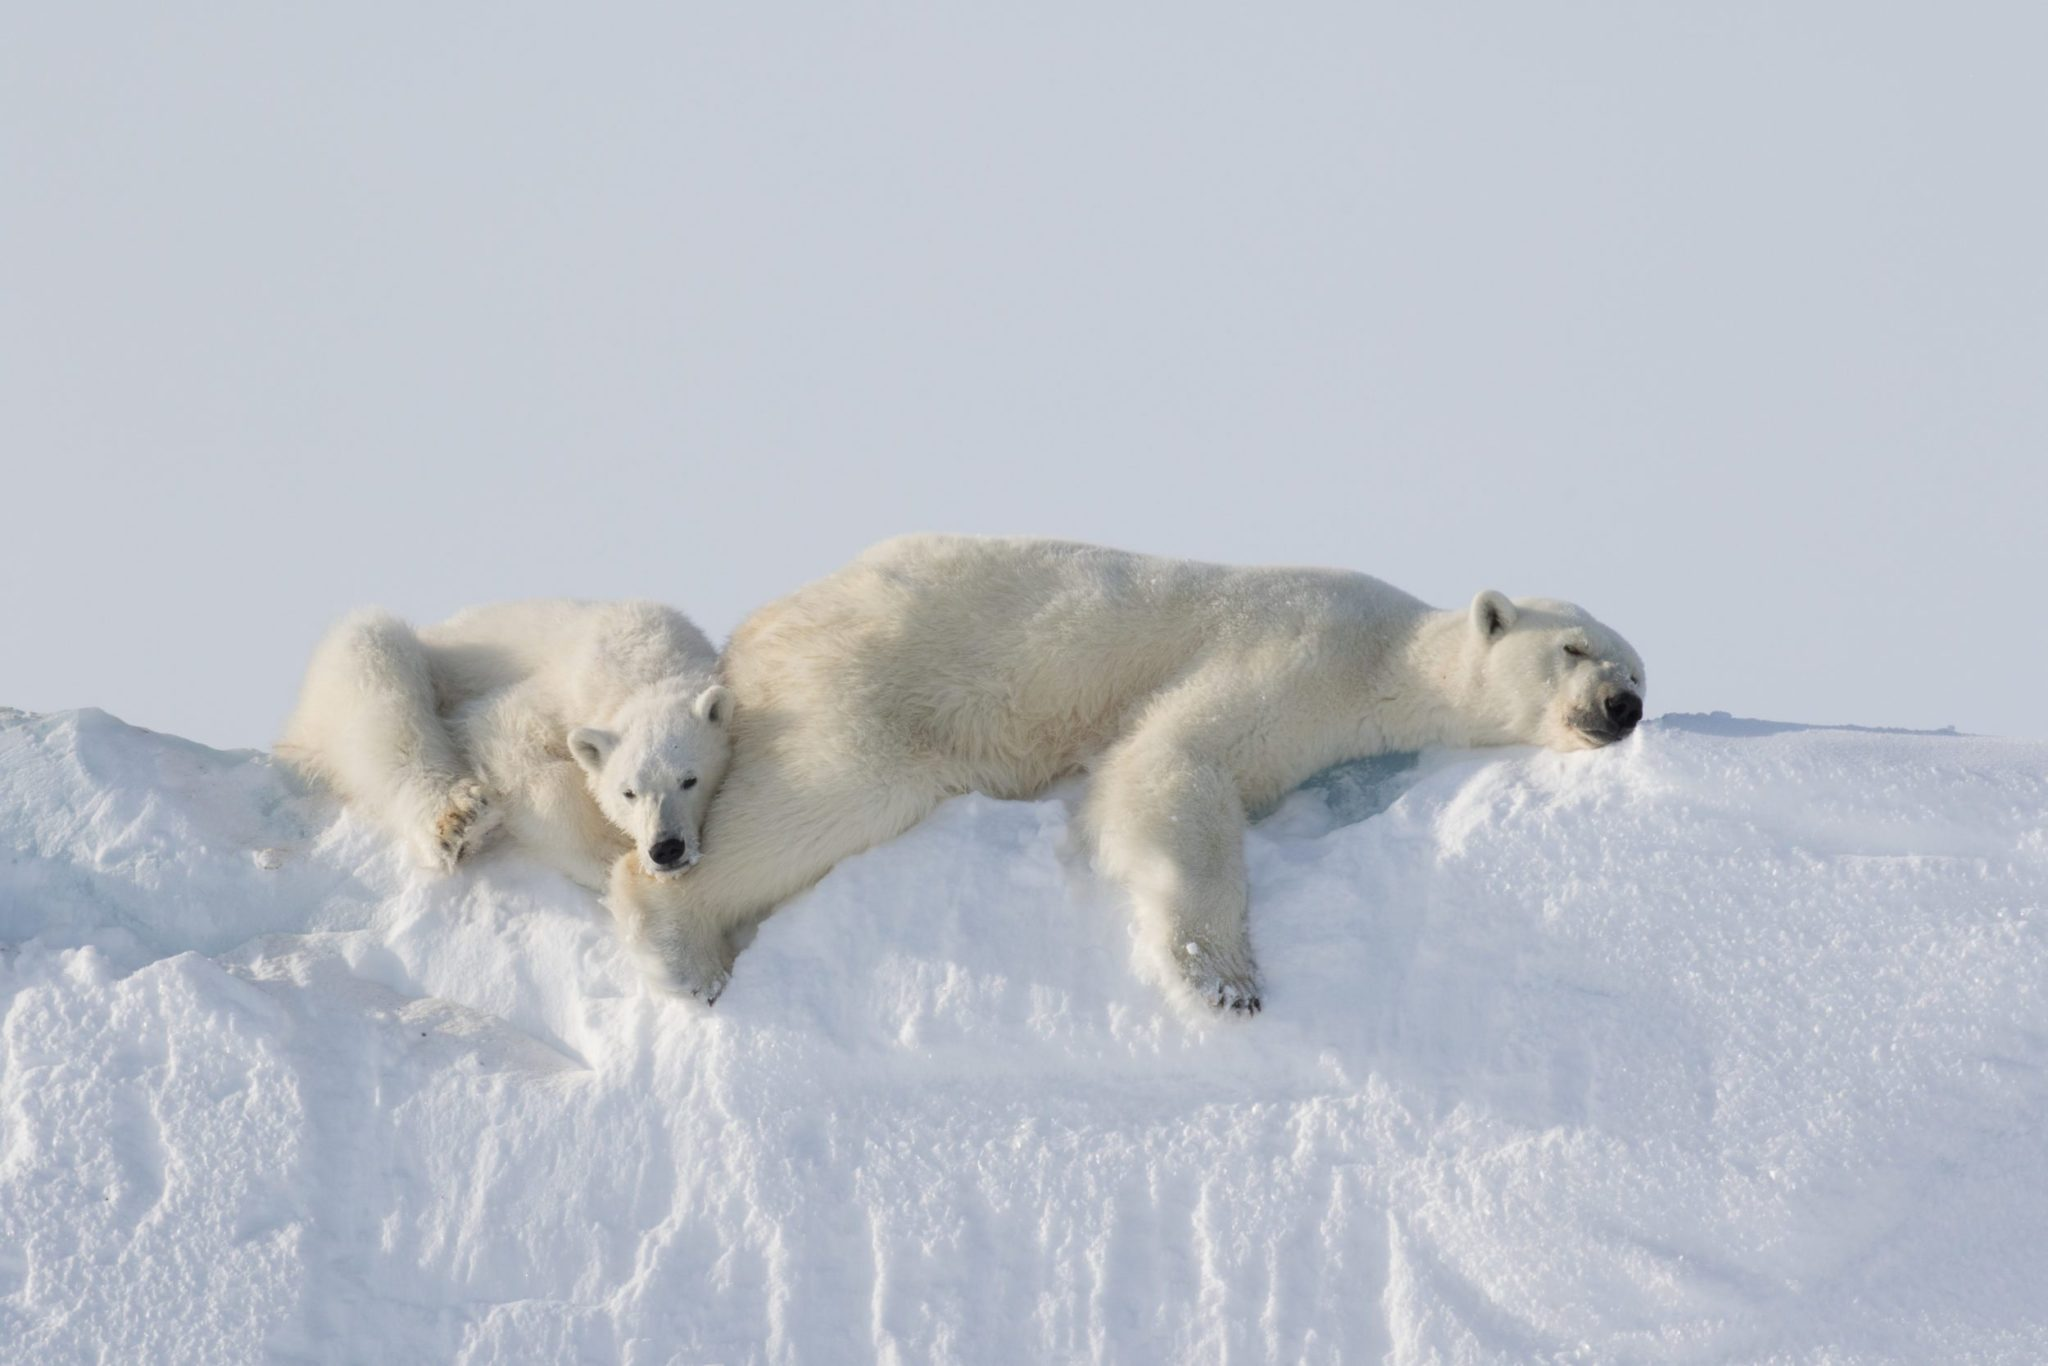 Spring Cubs & Polar Bears on Icebergs: Baffin Island | Arctic Kingdom